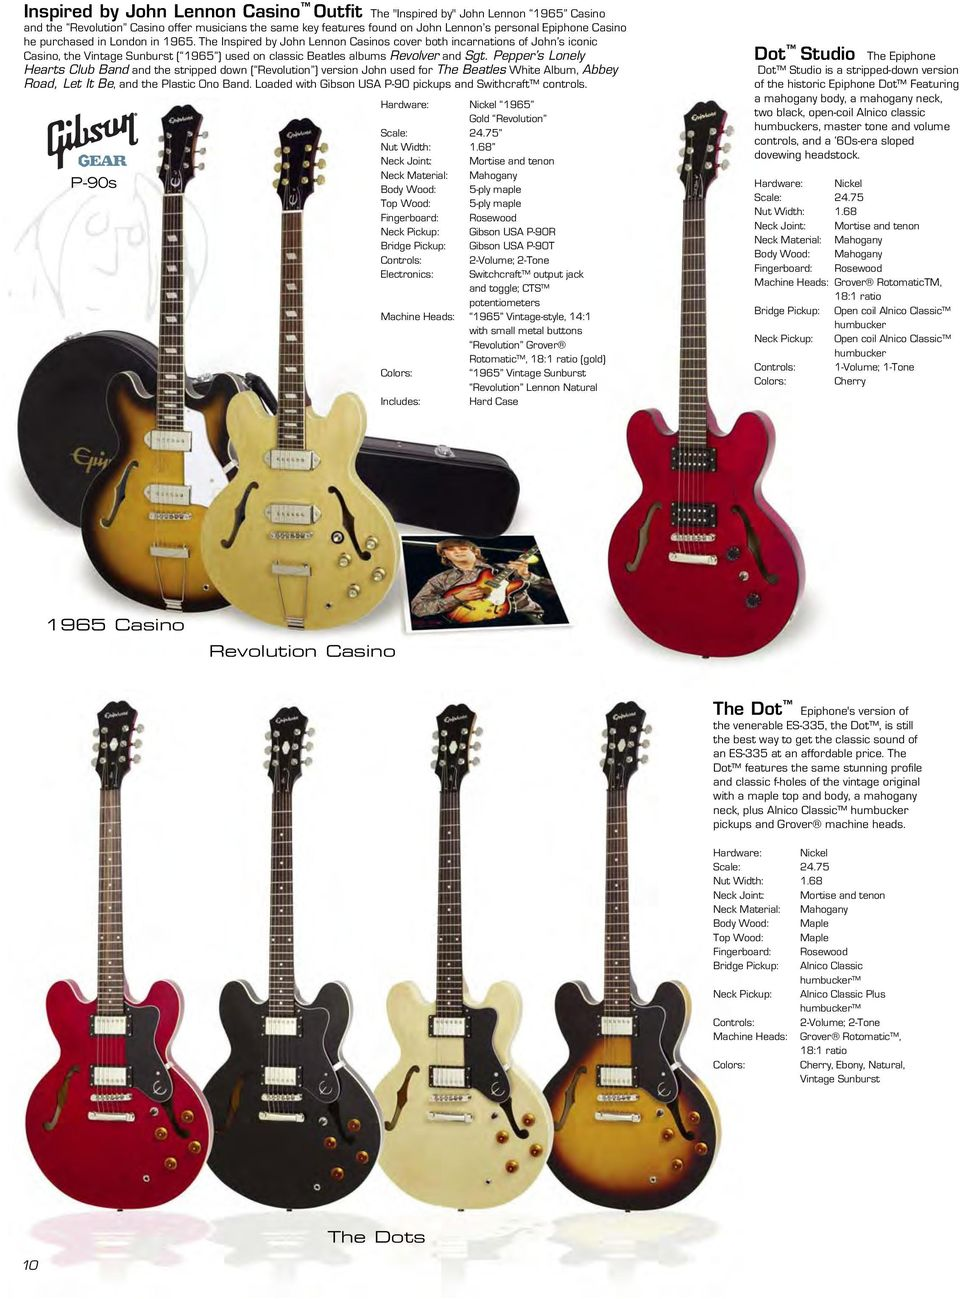 Epiphone Guitar Co A Part Of The Gibson Family Brands 1510 Elm Wiring Schematic 2 Volume 1 Tone Pepper S Lonely Hearts Club Band And Stripped Down Revolution Version John Used